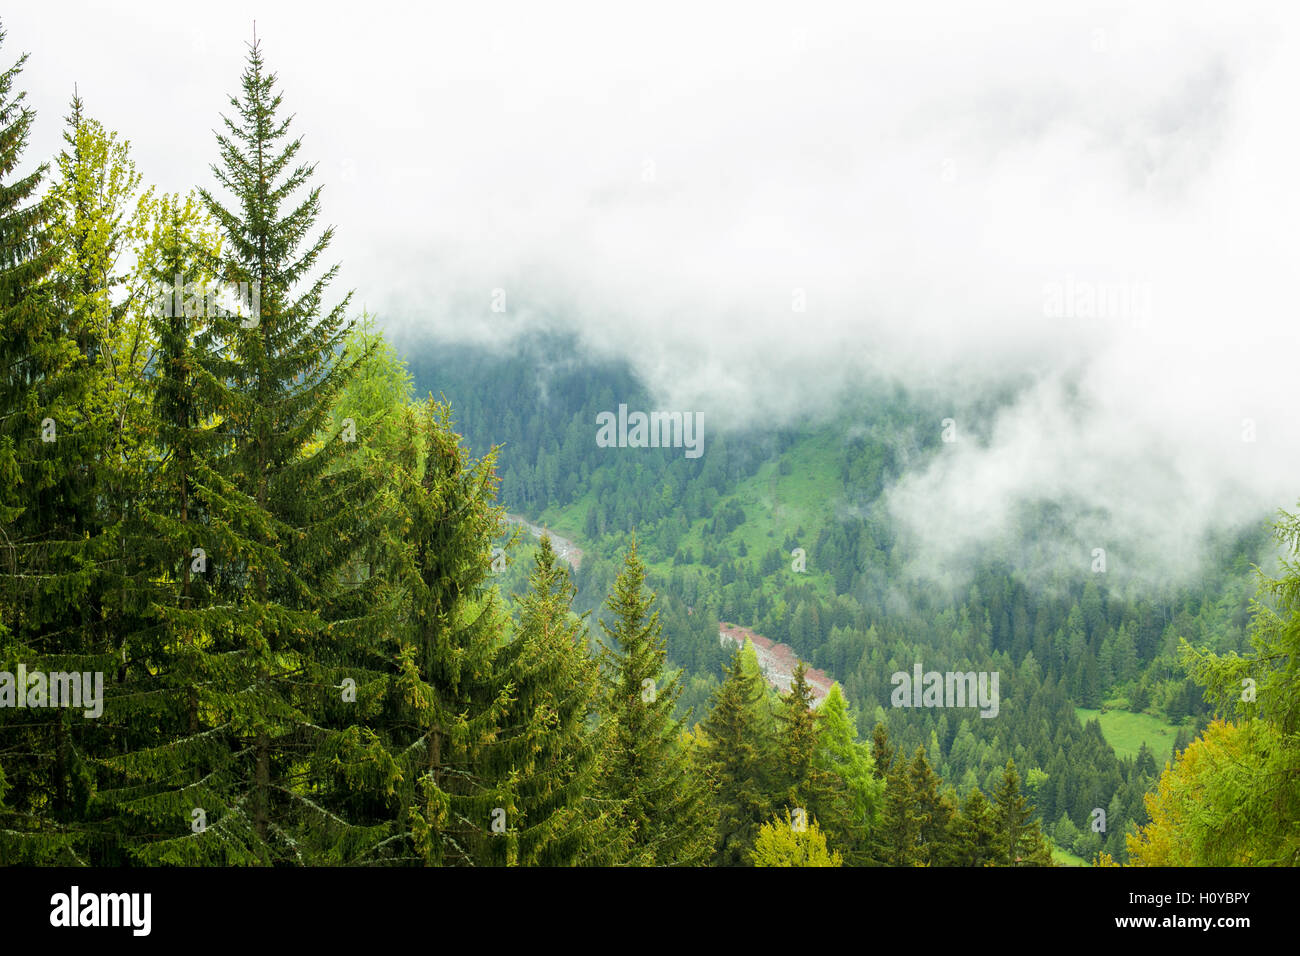 Forested mountain in cloud with the evergreen conifers - Stock Image